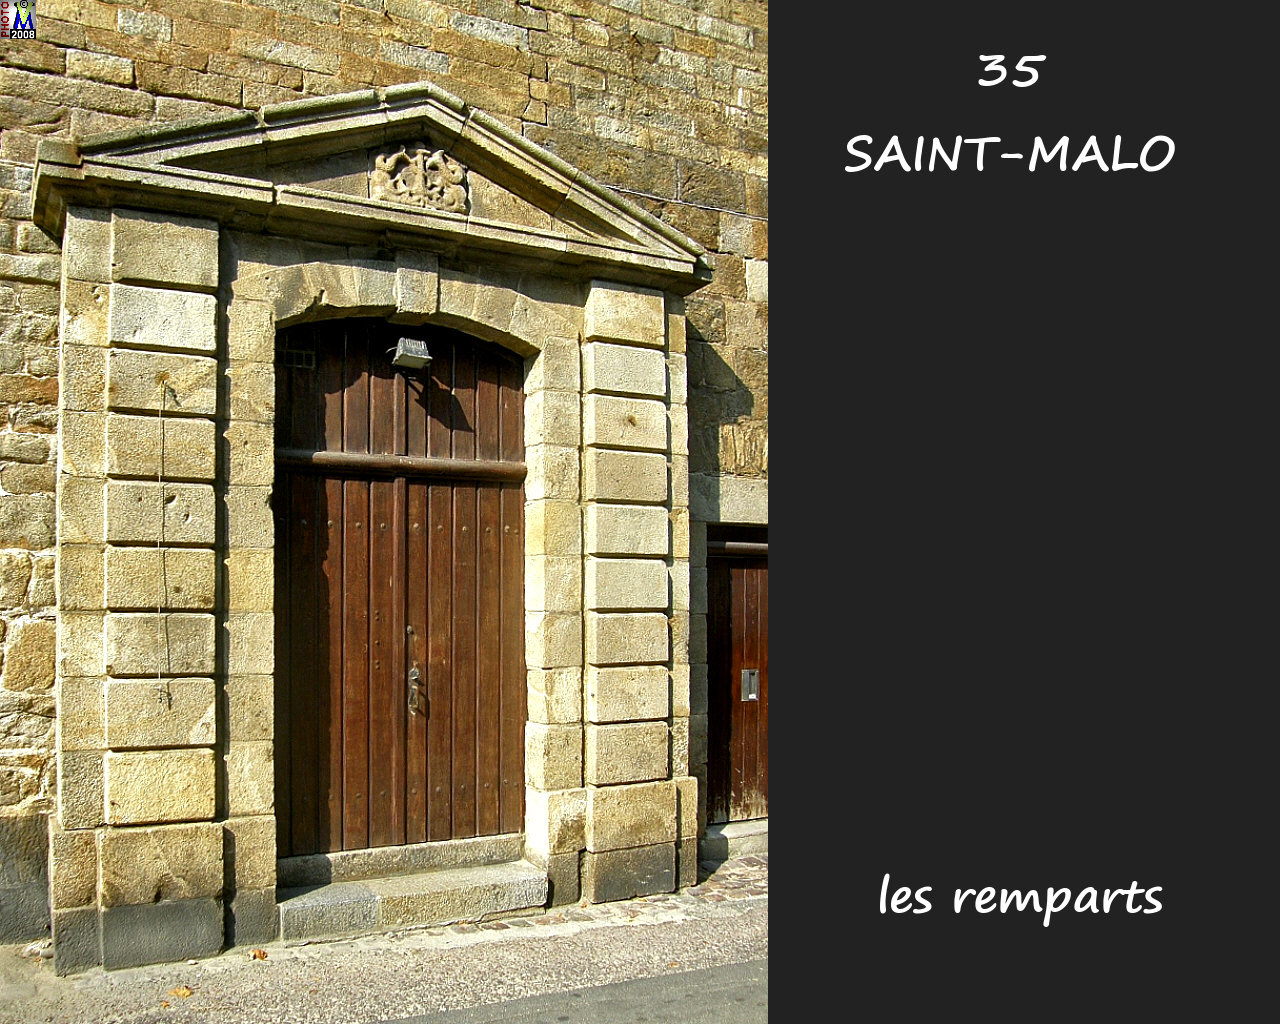 35StMALO_remparts_112.jpg